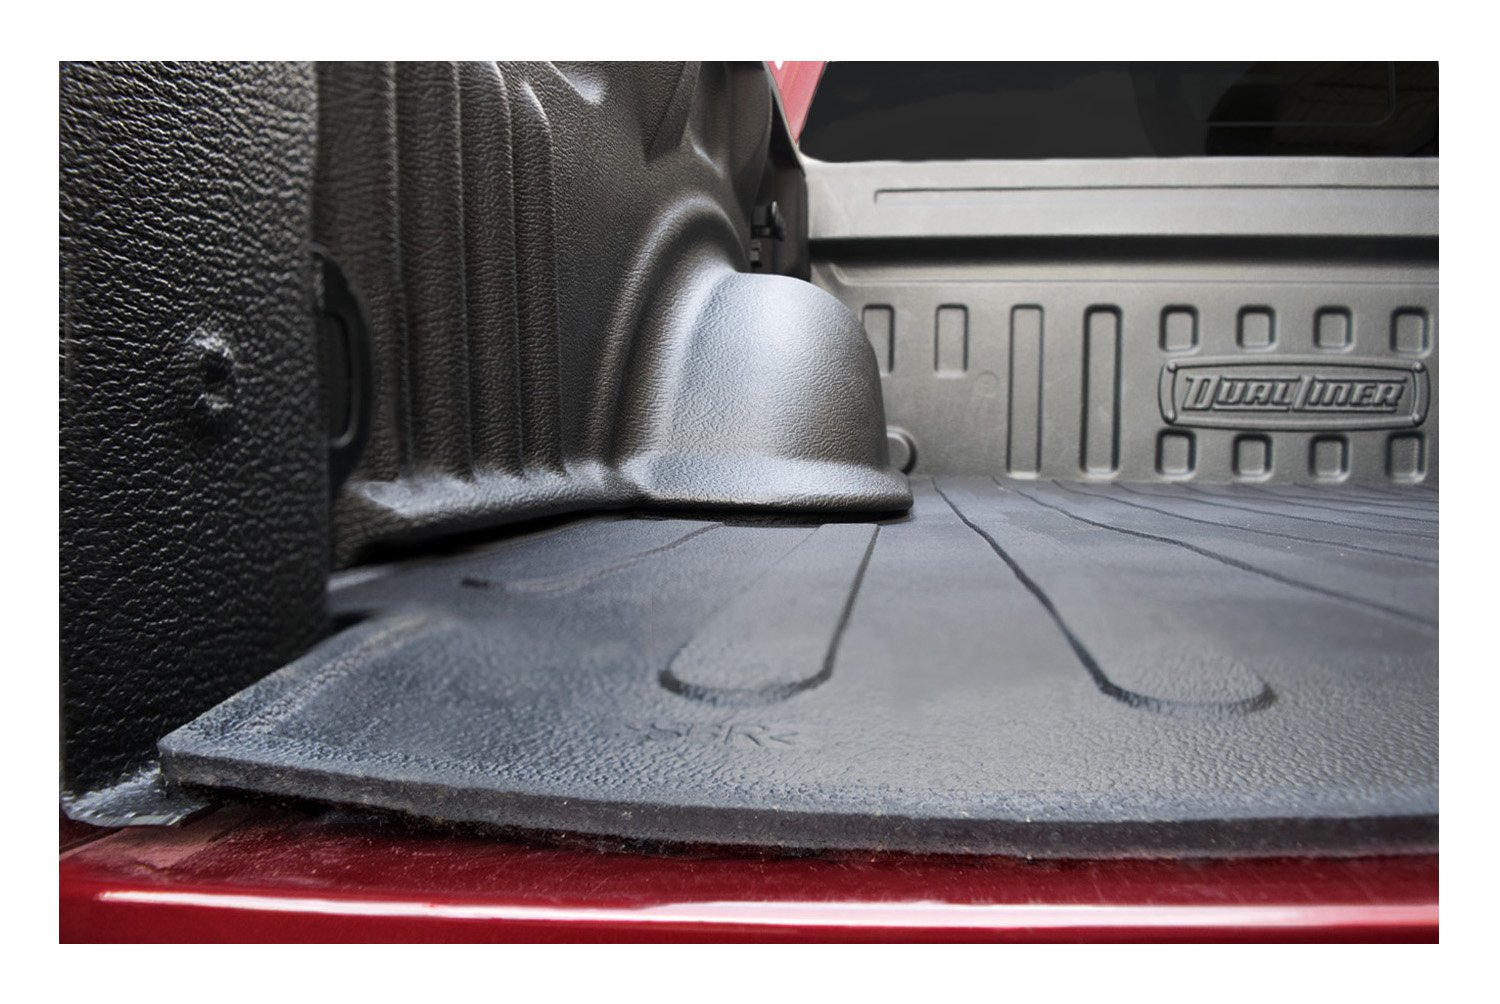 DualLiner Bed Liner Fits 2017-Current Ford F-250//F-350 8 Bed Model with Out LED Lights # FOS1780-N